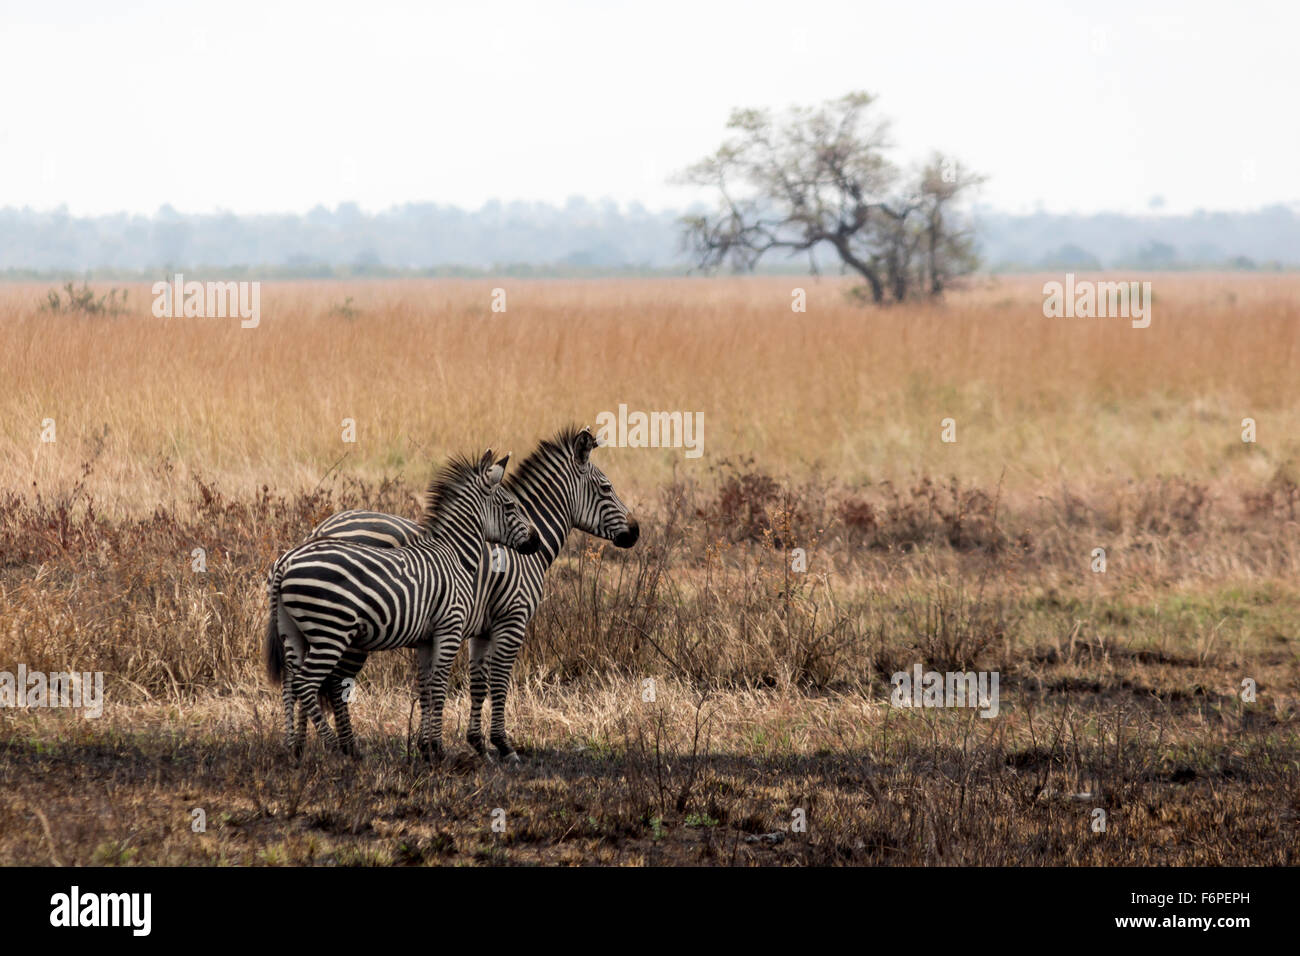 Two zebras looking right, taken on the savannah in Africa while on safari - Stock Image